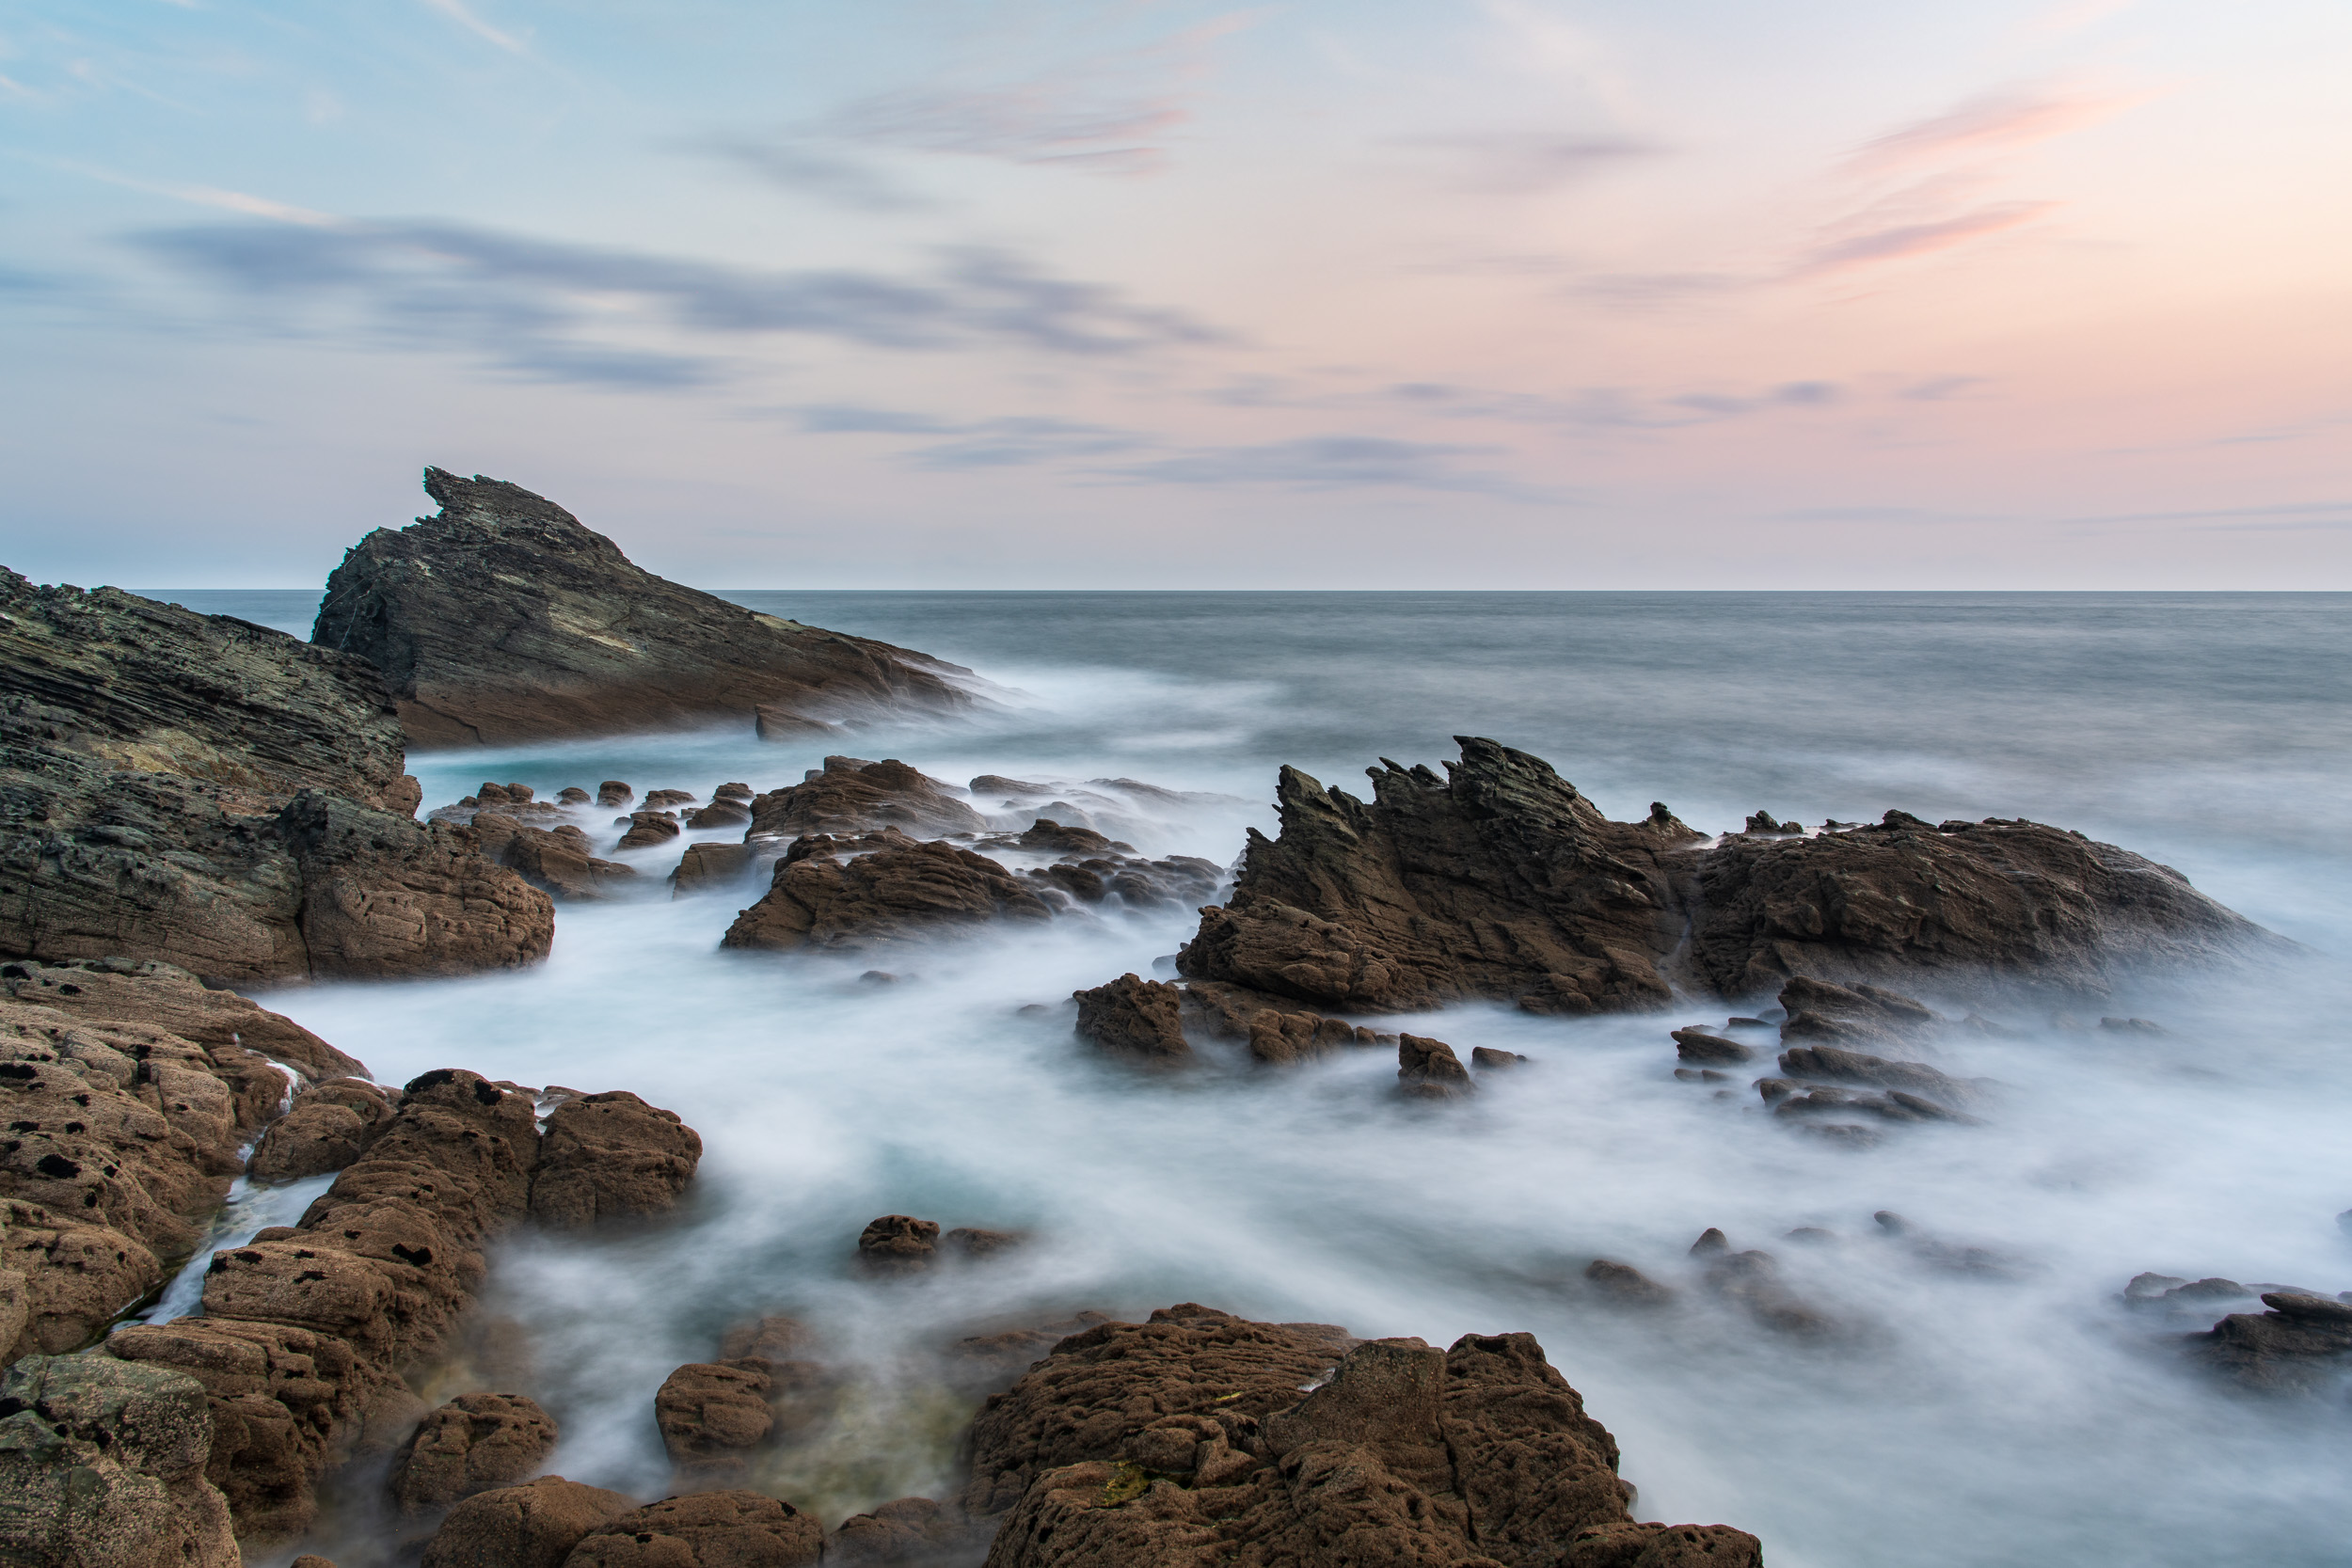 The Rocks at Gammon Head #3, Devon  - Nikon D850, Nikkor 24-70 mm f/2.8 VR at 24 mm, 30 seconds at ISO 64, f/13, Lee Filters Circular Polariser and 6 Stop IR ND.